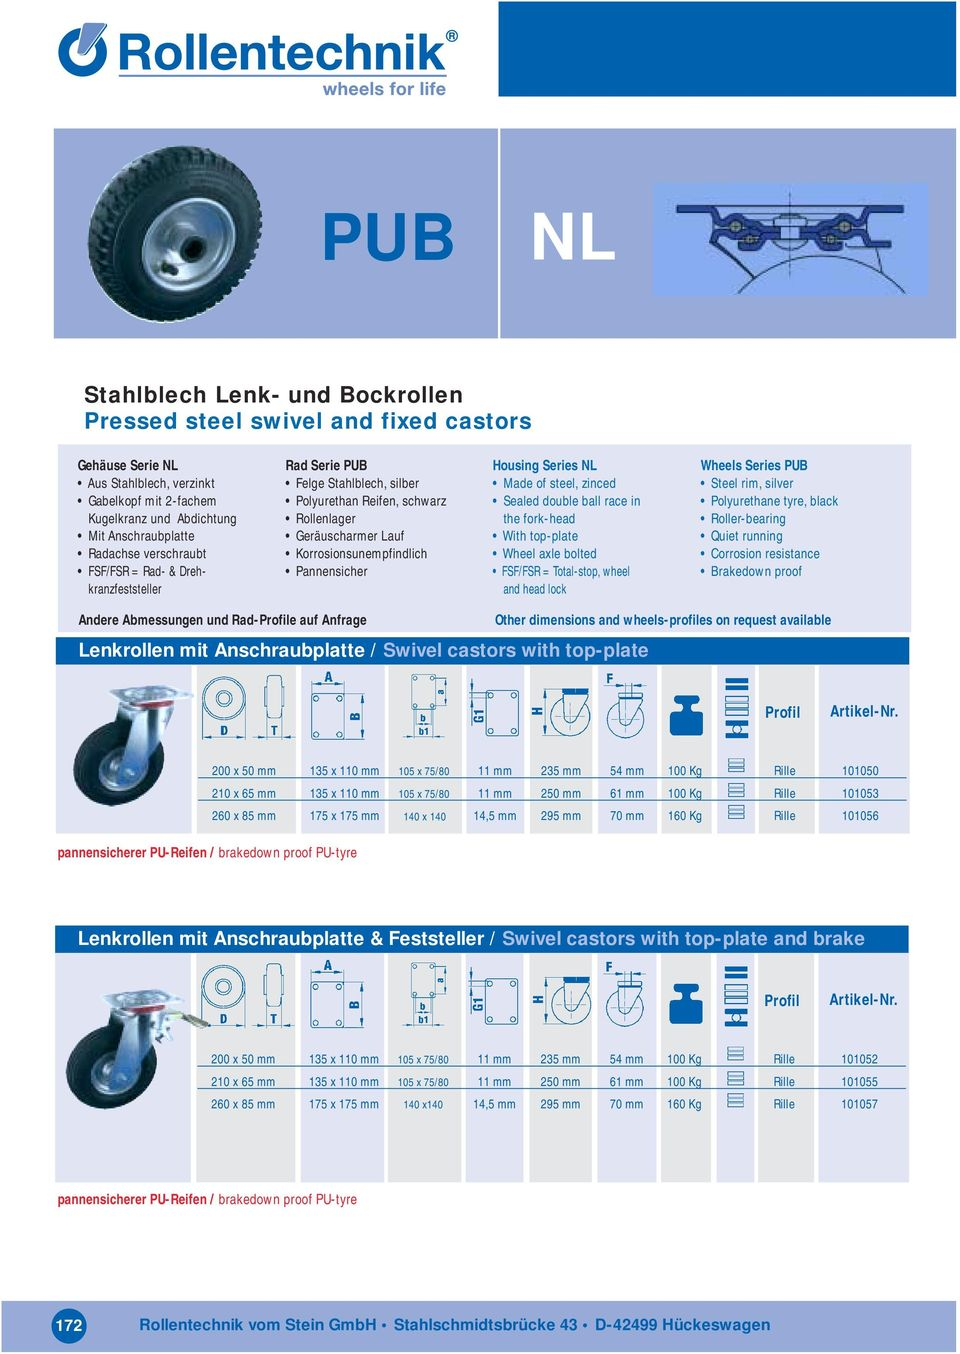 NL Made of steel, zinced Sealed double ball race in the fork-head With top-plate Wheel axle bolted FSF/FSR = Total-stop, wheel and head lock Wheels Series PUB Steel rim, silver Polyurethane tyre,